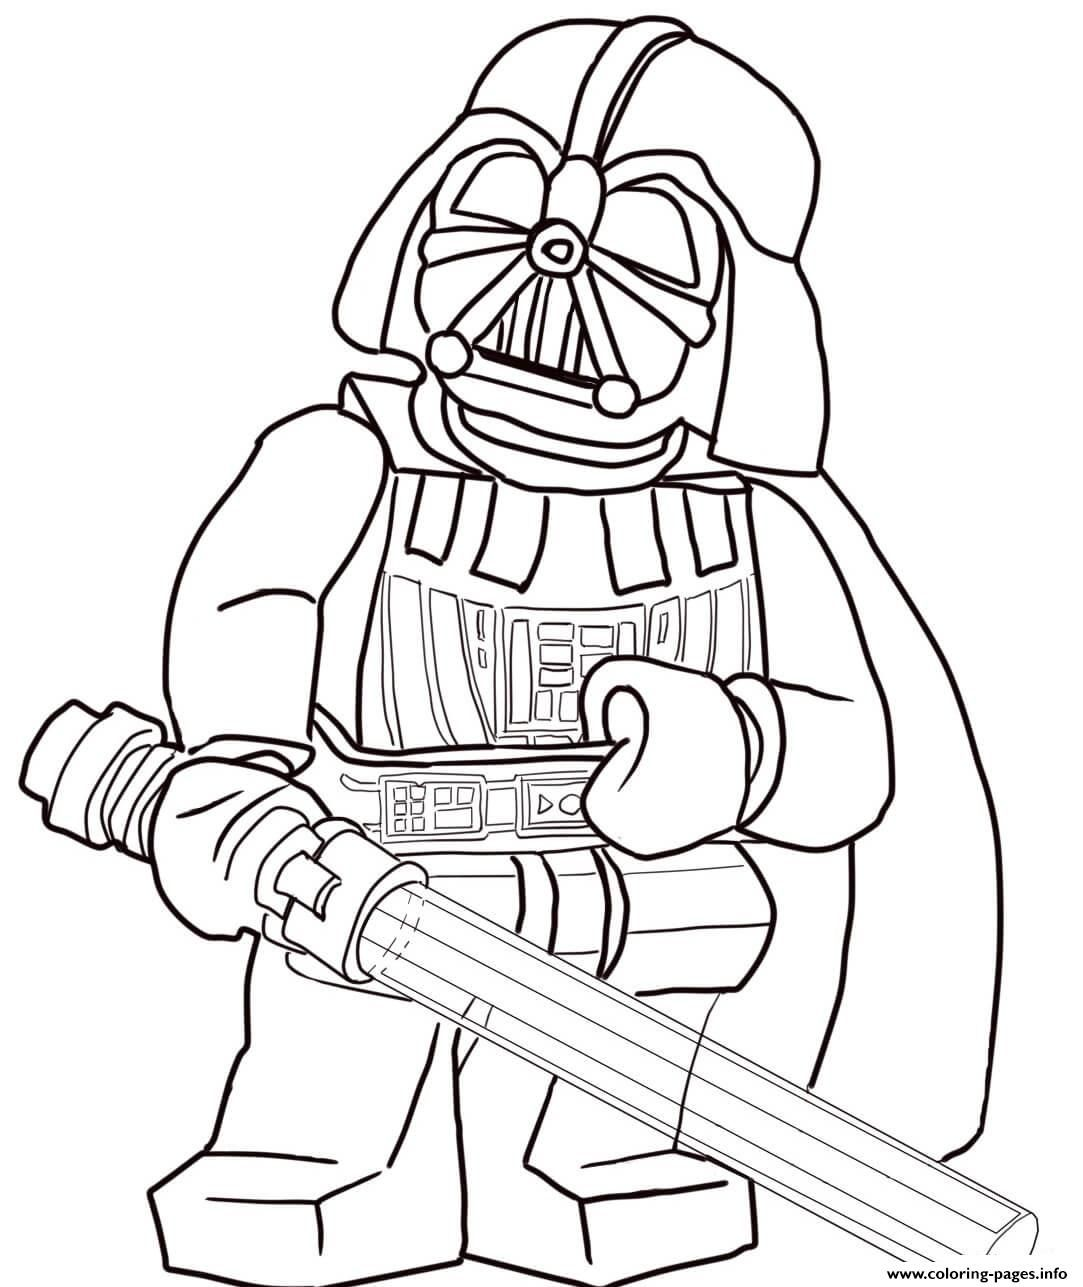 Print Lego Star Wars Darth Vader Coloring Pages Star Wars Coloring Sheet Star Wars Colors Lego Coloring Pages